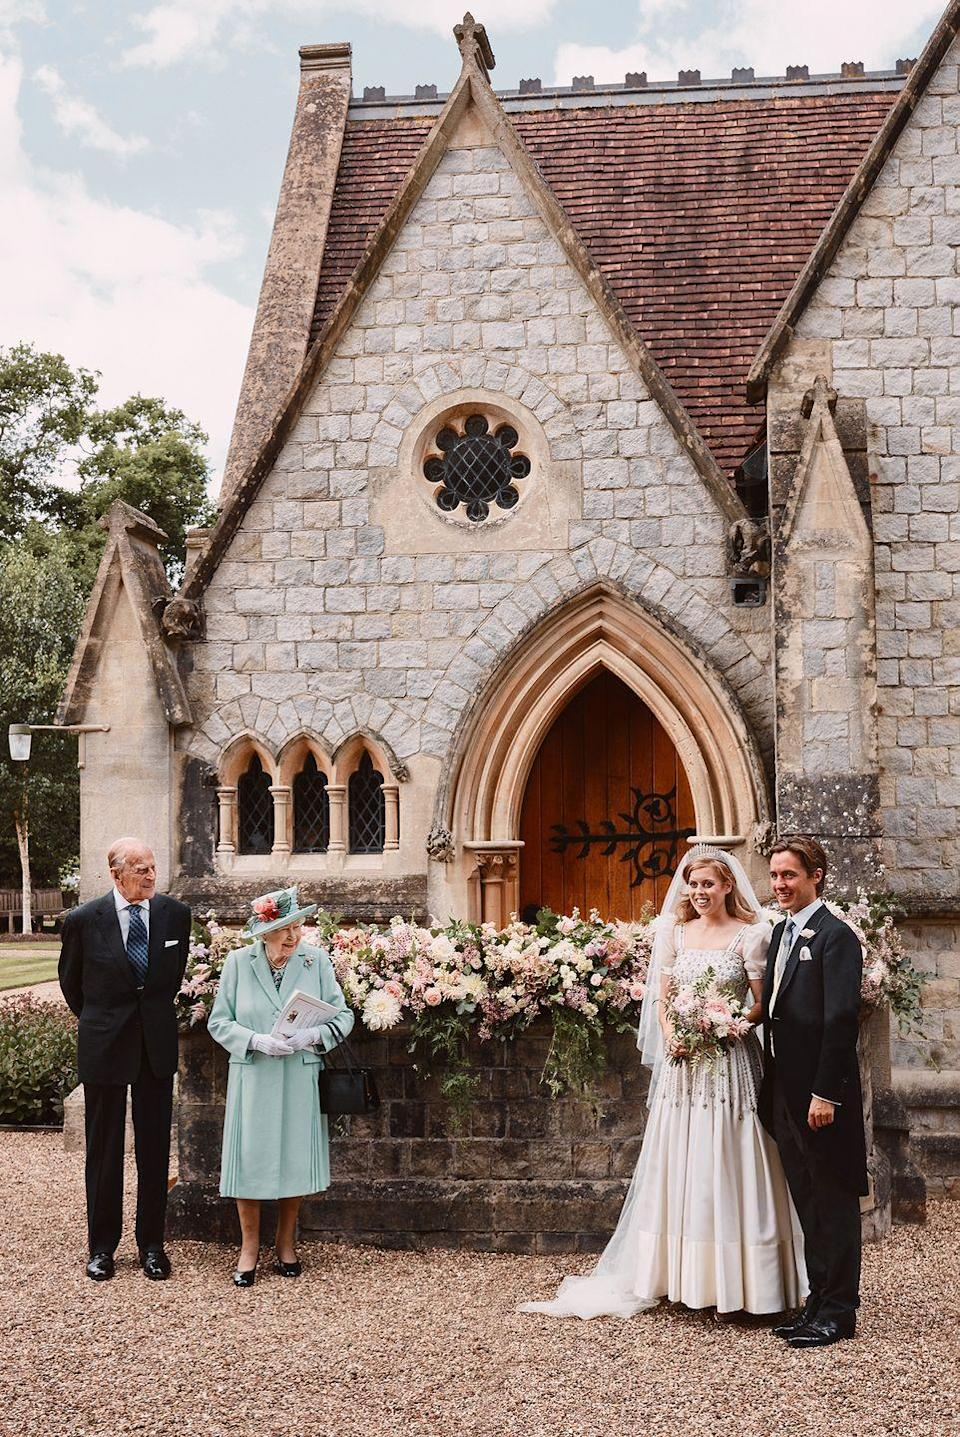 <p>Princess Beatrice's wedding portraits serve as a poignant reminder of how the coronavirus pandemic impacted the royal family in 2020. Not only did the royal bride have to postpone her nuptials because of COVID-19, but this photo of the newlyweds alongside Queen Elizabeth and Prince Philip illustrates the social distancing measures required of everyone during this global health crisis.</p>